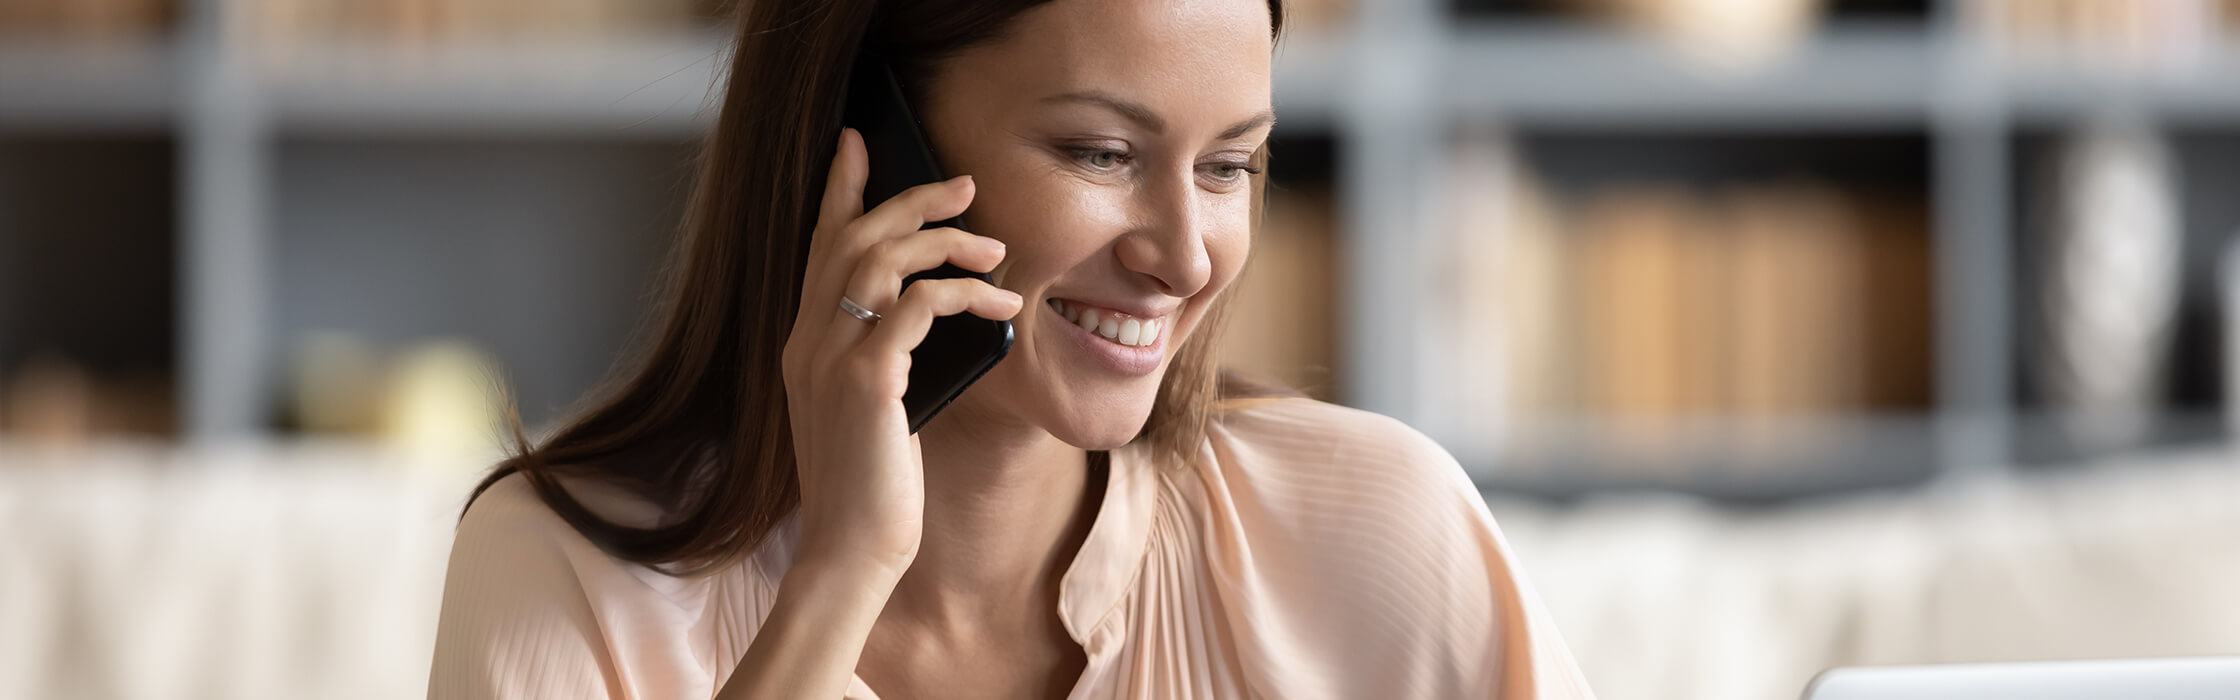 A woman smiling on the phone